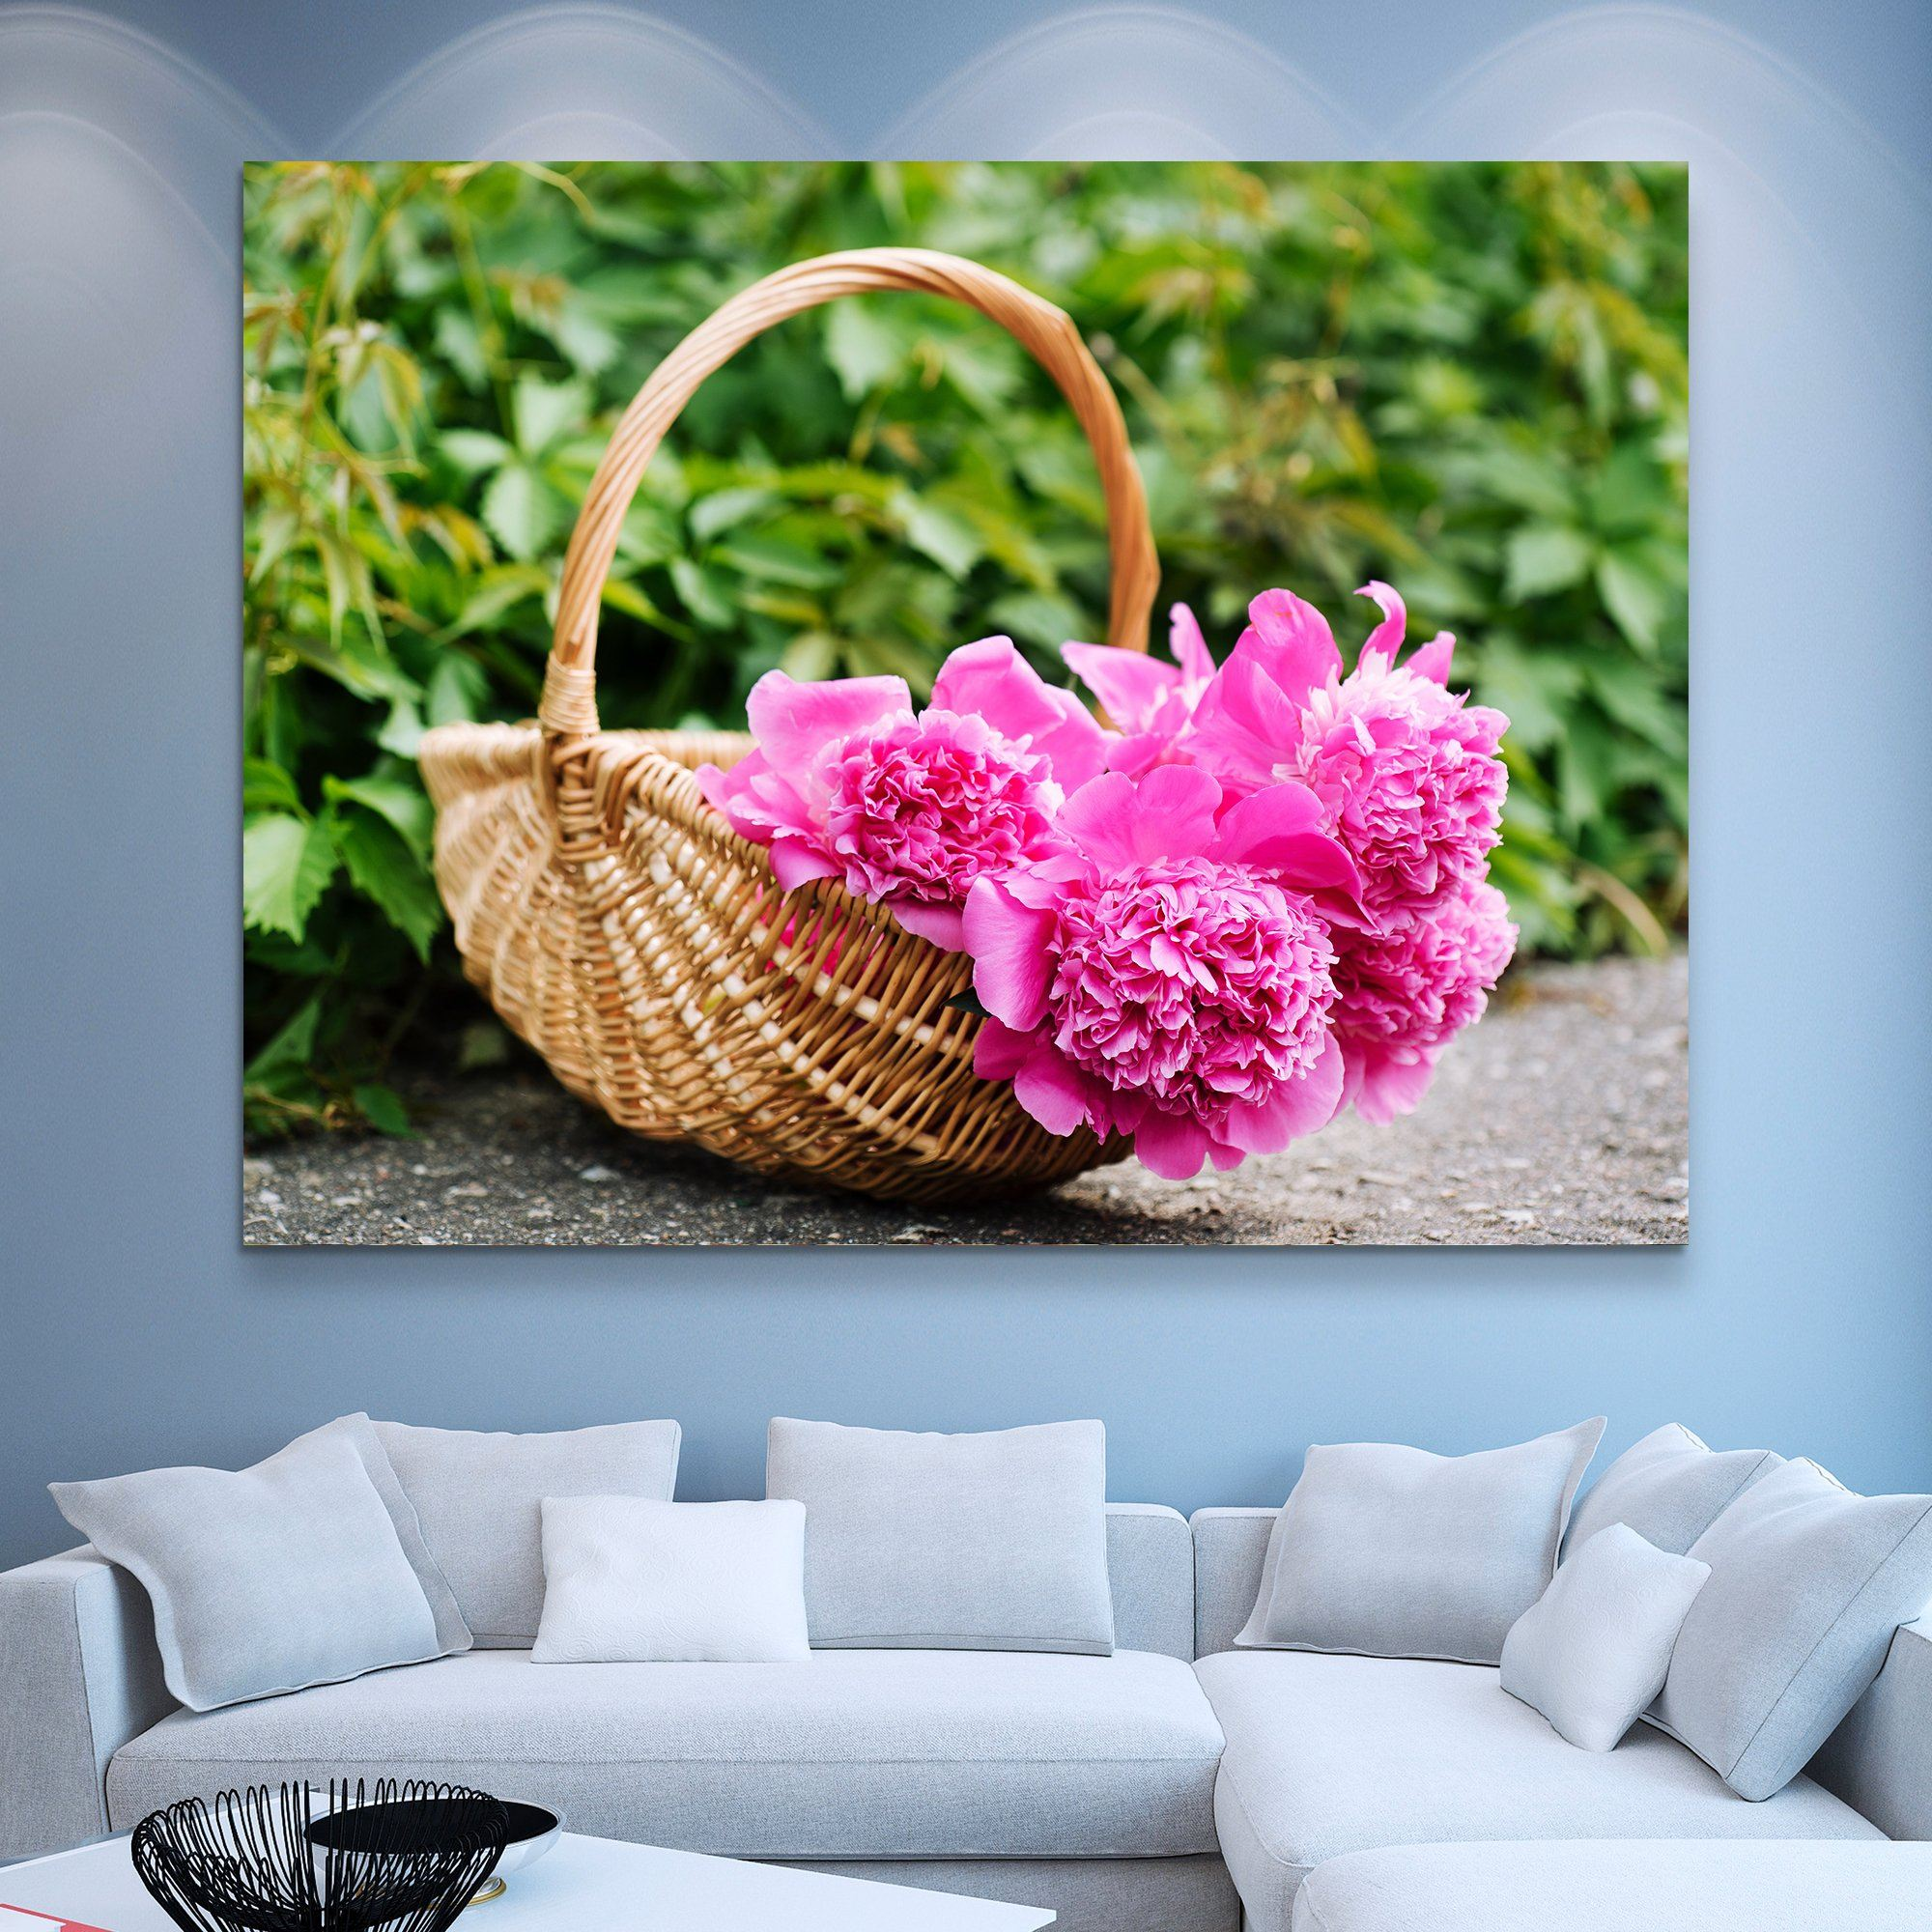 Peonies In A Basket wall art